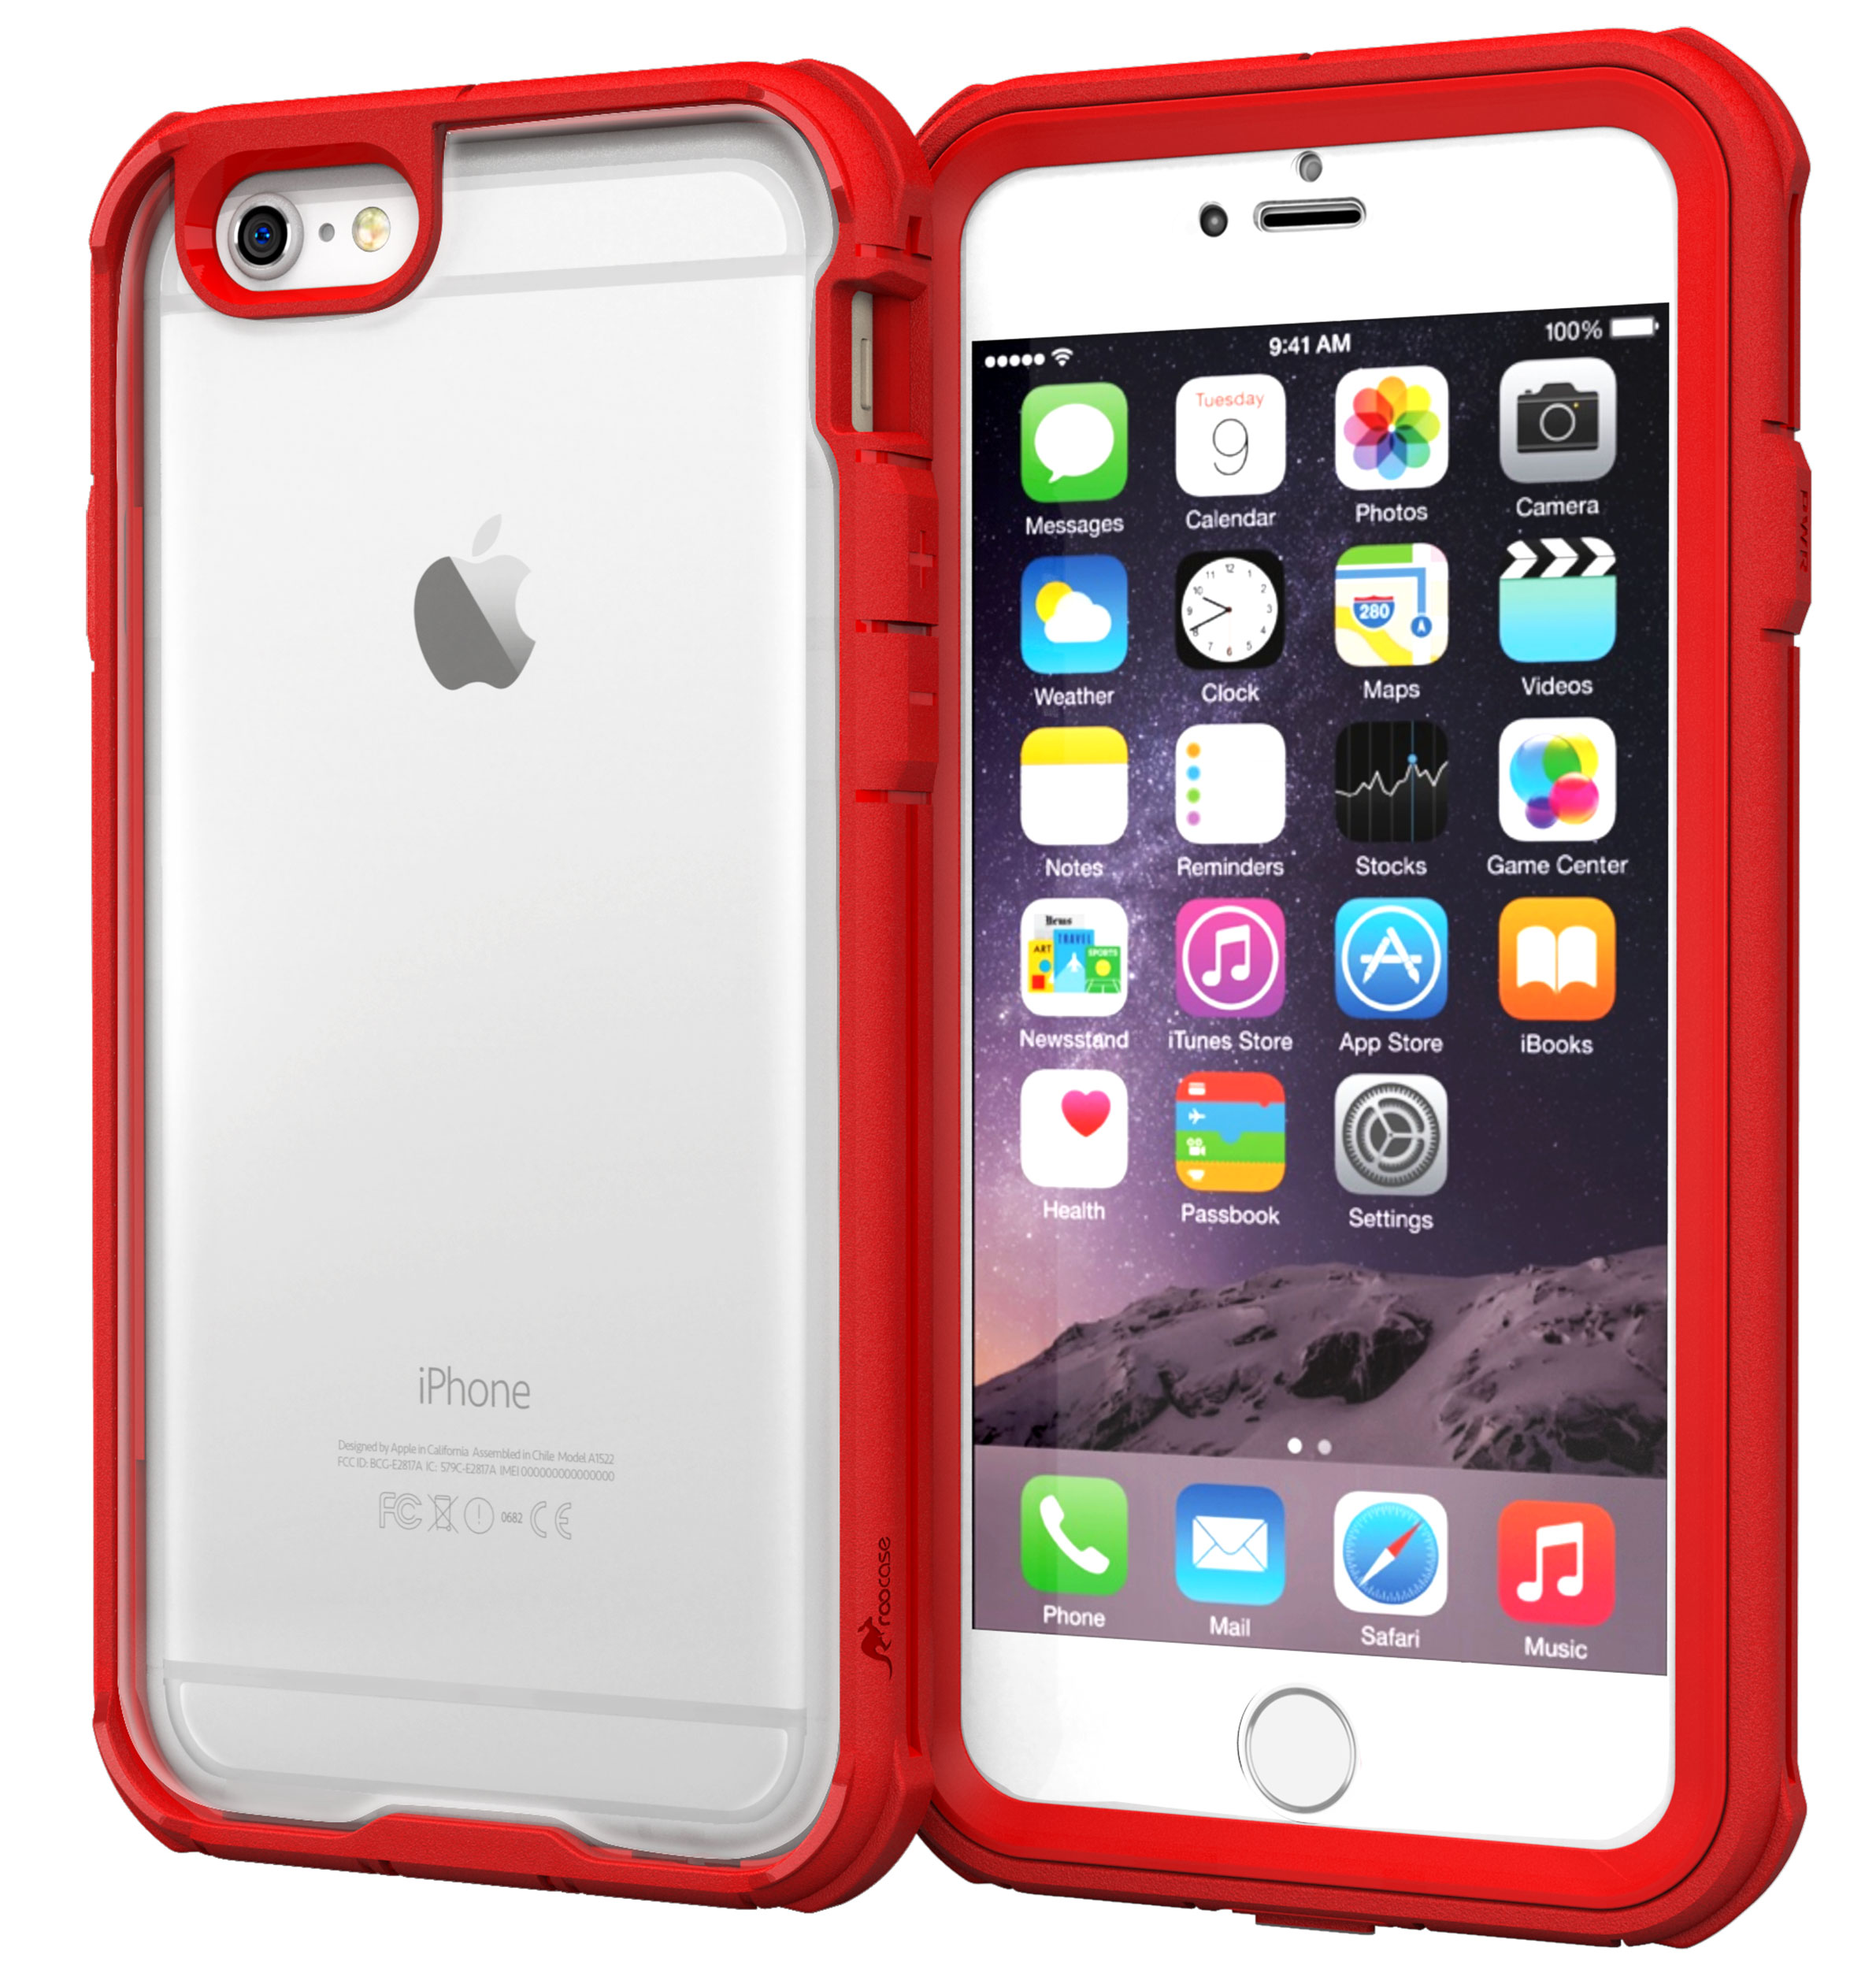 iPhone 6s Case, roocase [Glacier TOUGH] Hybrid Clear PC / TPU Armor Full Body Protection Case Cover for Apple iPhone 6 / 6s (2015) / iPhone 6 Plus 5.5